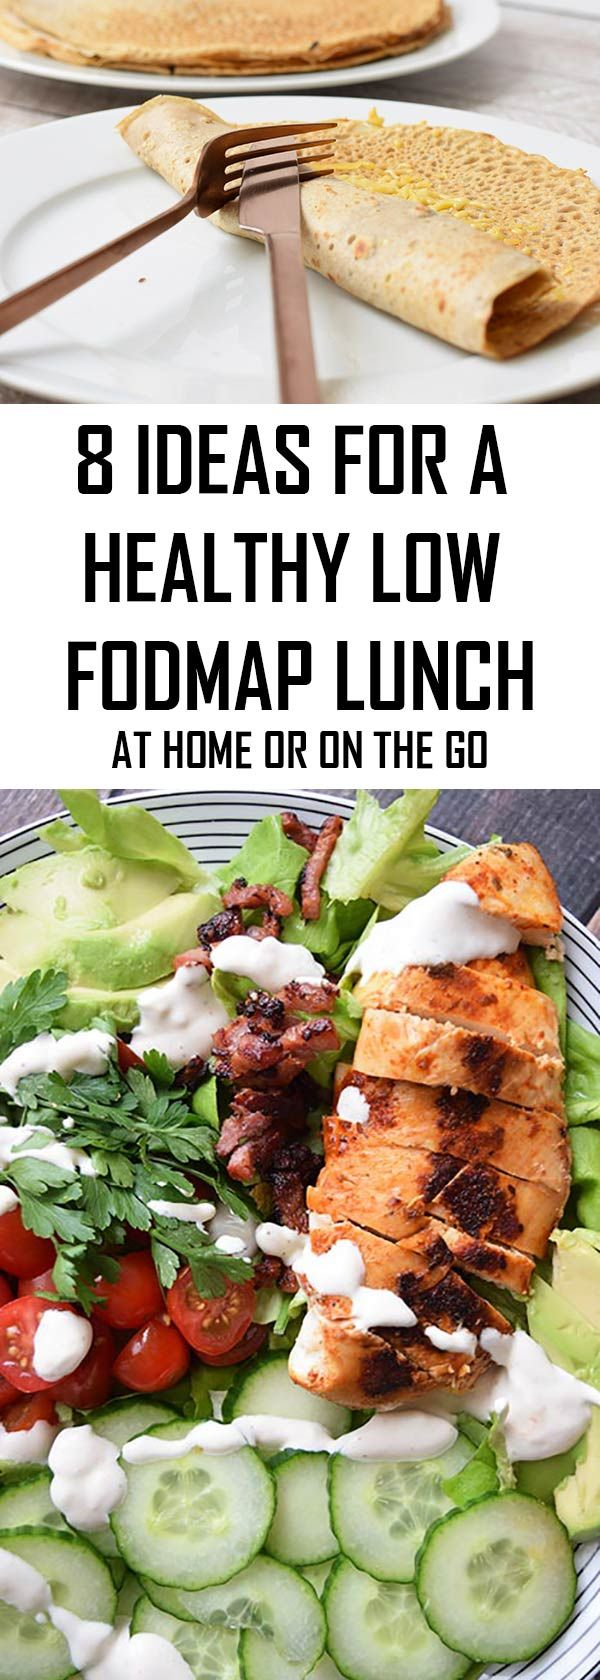 Never no what to have for lunch on the low FODMAP diet? With this blog you will never run out of ideas again! Most options are also gluten- and lactose-free